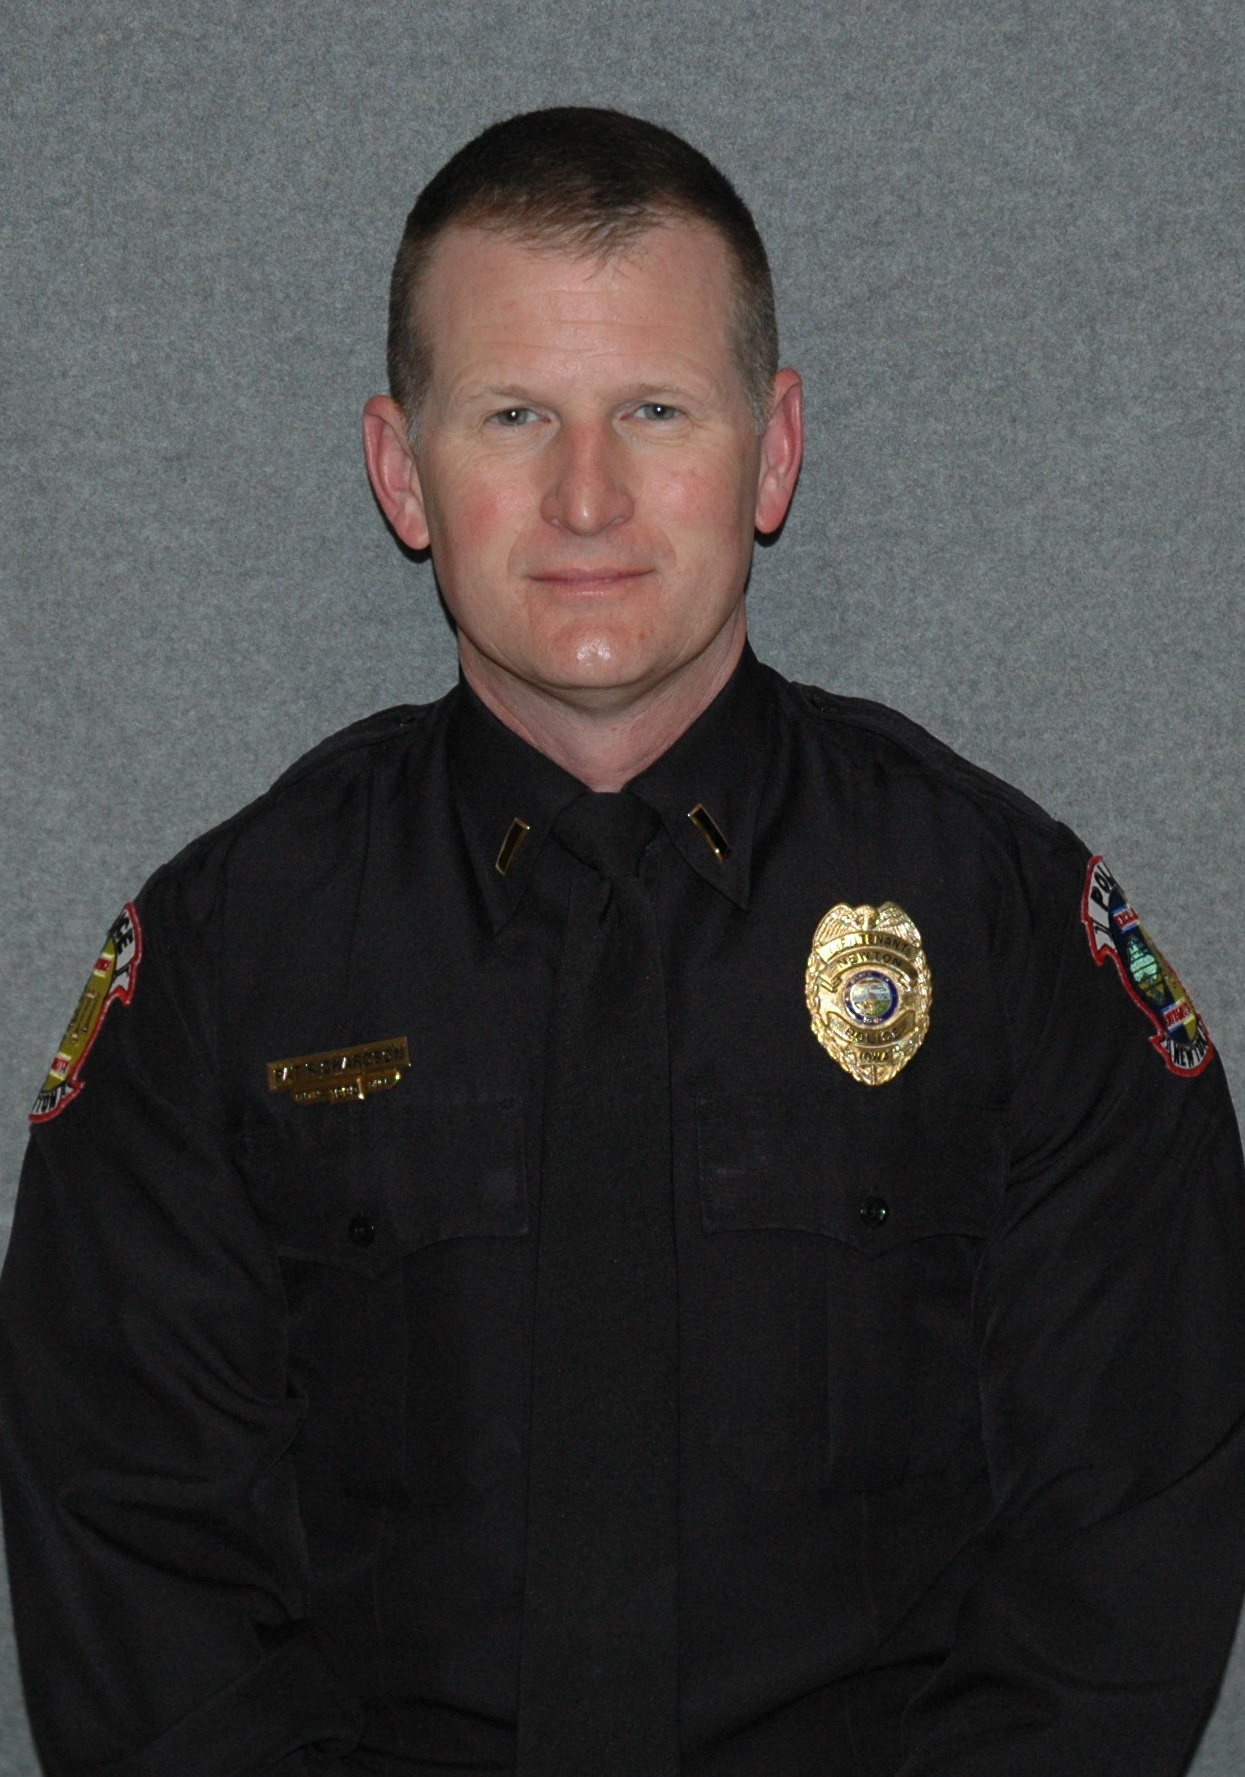 Lt. Patrick Richardson